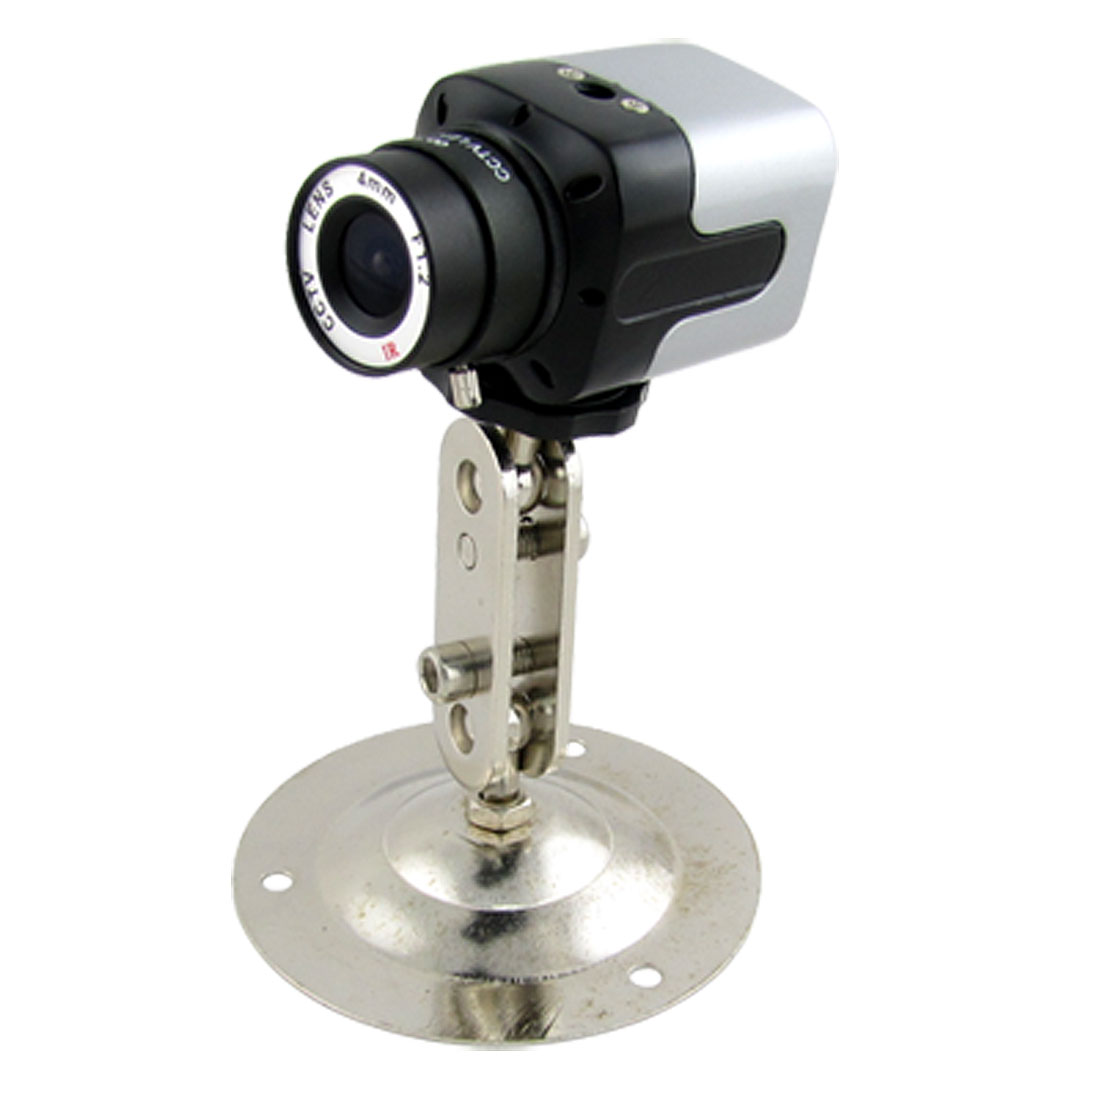 "CCTV Lens 4MM 1/3"" PAL CCD Video Security IR Camera"